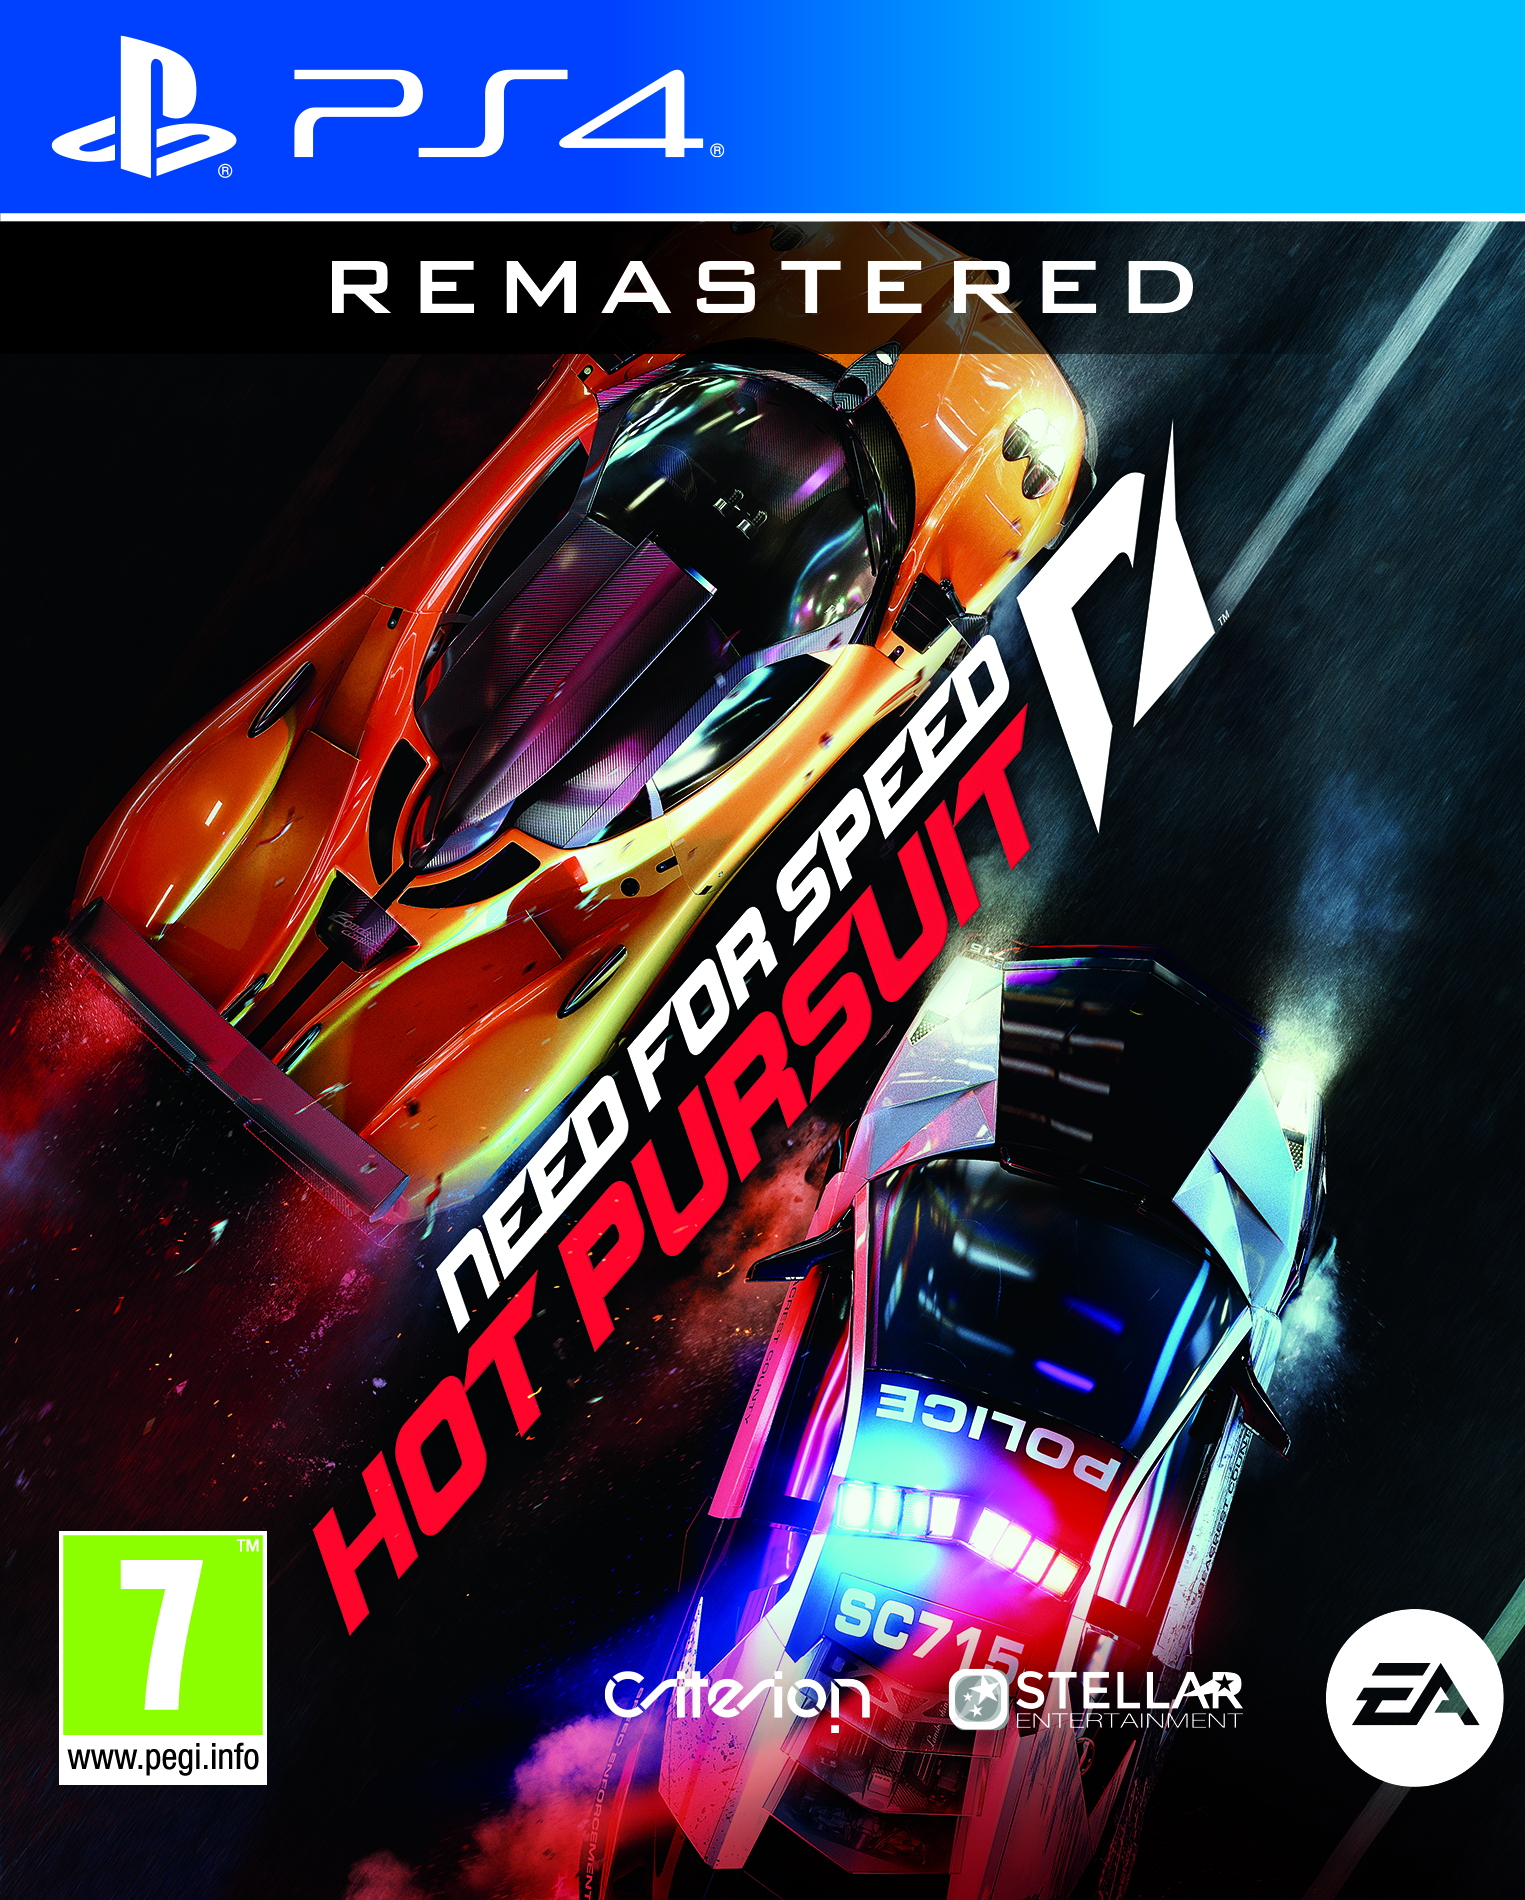 https://www.bigbang.si/upload/catalog/product/681115/need-for-speed-hot-pursuit-remastered-ps4-box-4618_5f7fe0c55f5be.jpg